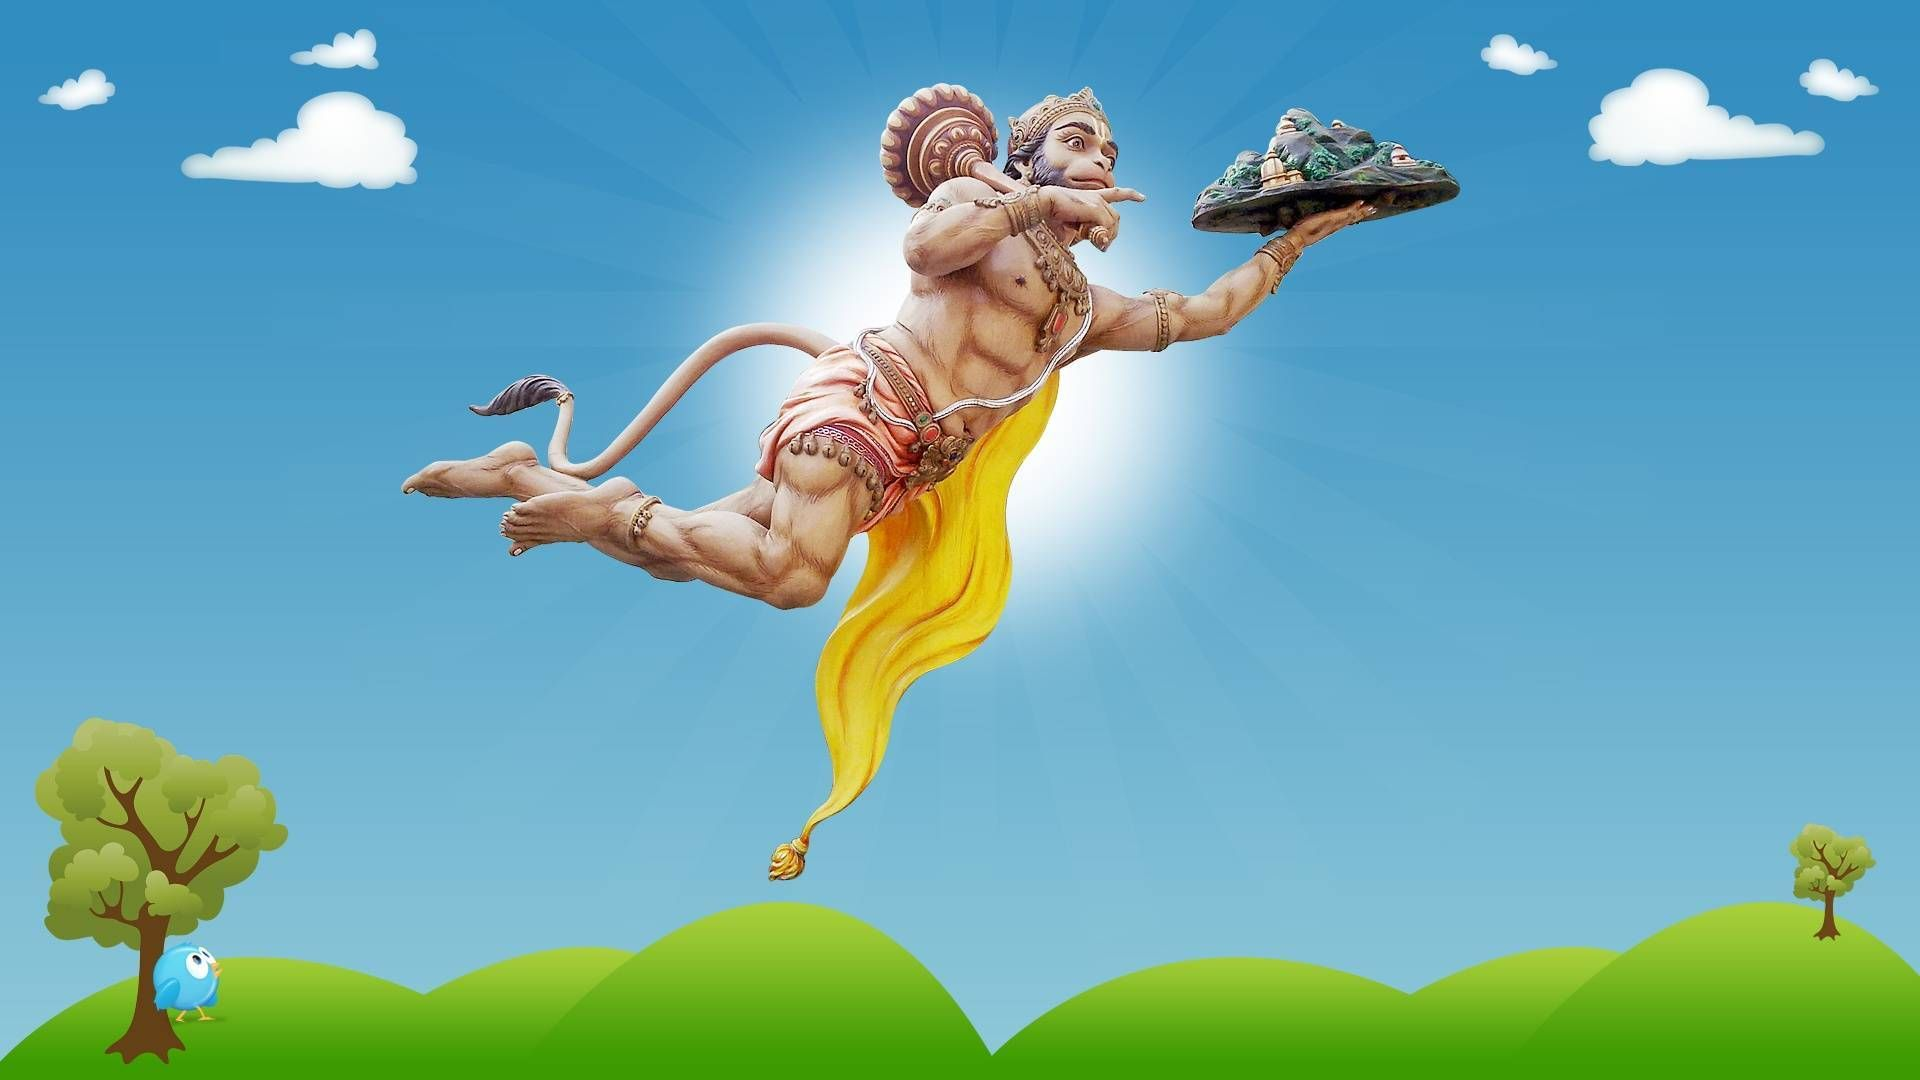 Hanuman Wallpaper 3d Flying Hanuman Images Full Hd 1920x1080 Download Hd Wallpaper Wallpapertip